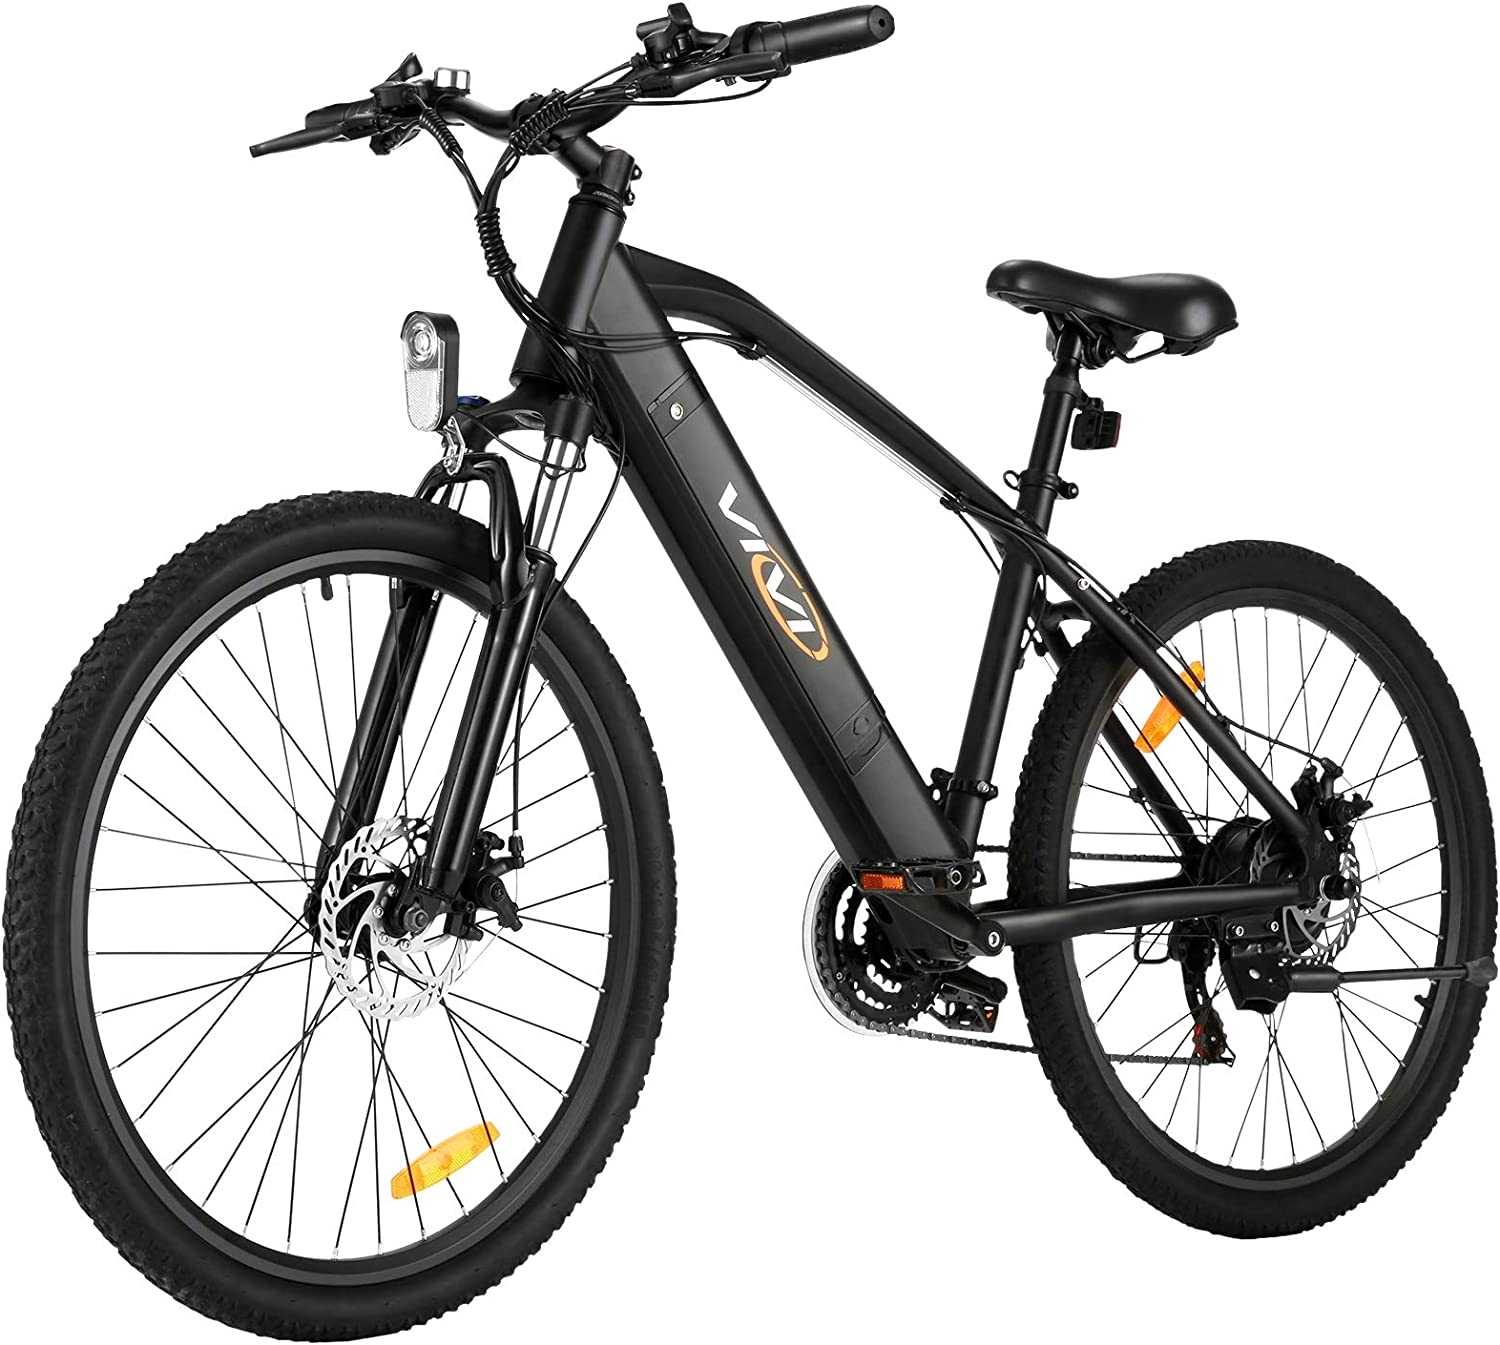 """Amazon.com : Electric Bike for Adult, Vivi 26"""" Electric Mountain Bikes 250W/350w Motor Electric Bicycle for Adults, E-Bike for Men & Women, Professional Shimano 21 Speed Gears with Removable Lithium-Ion Battery :"""